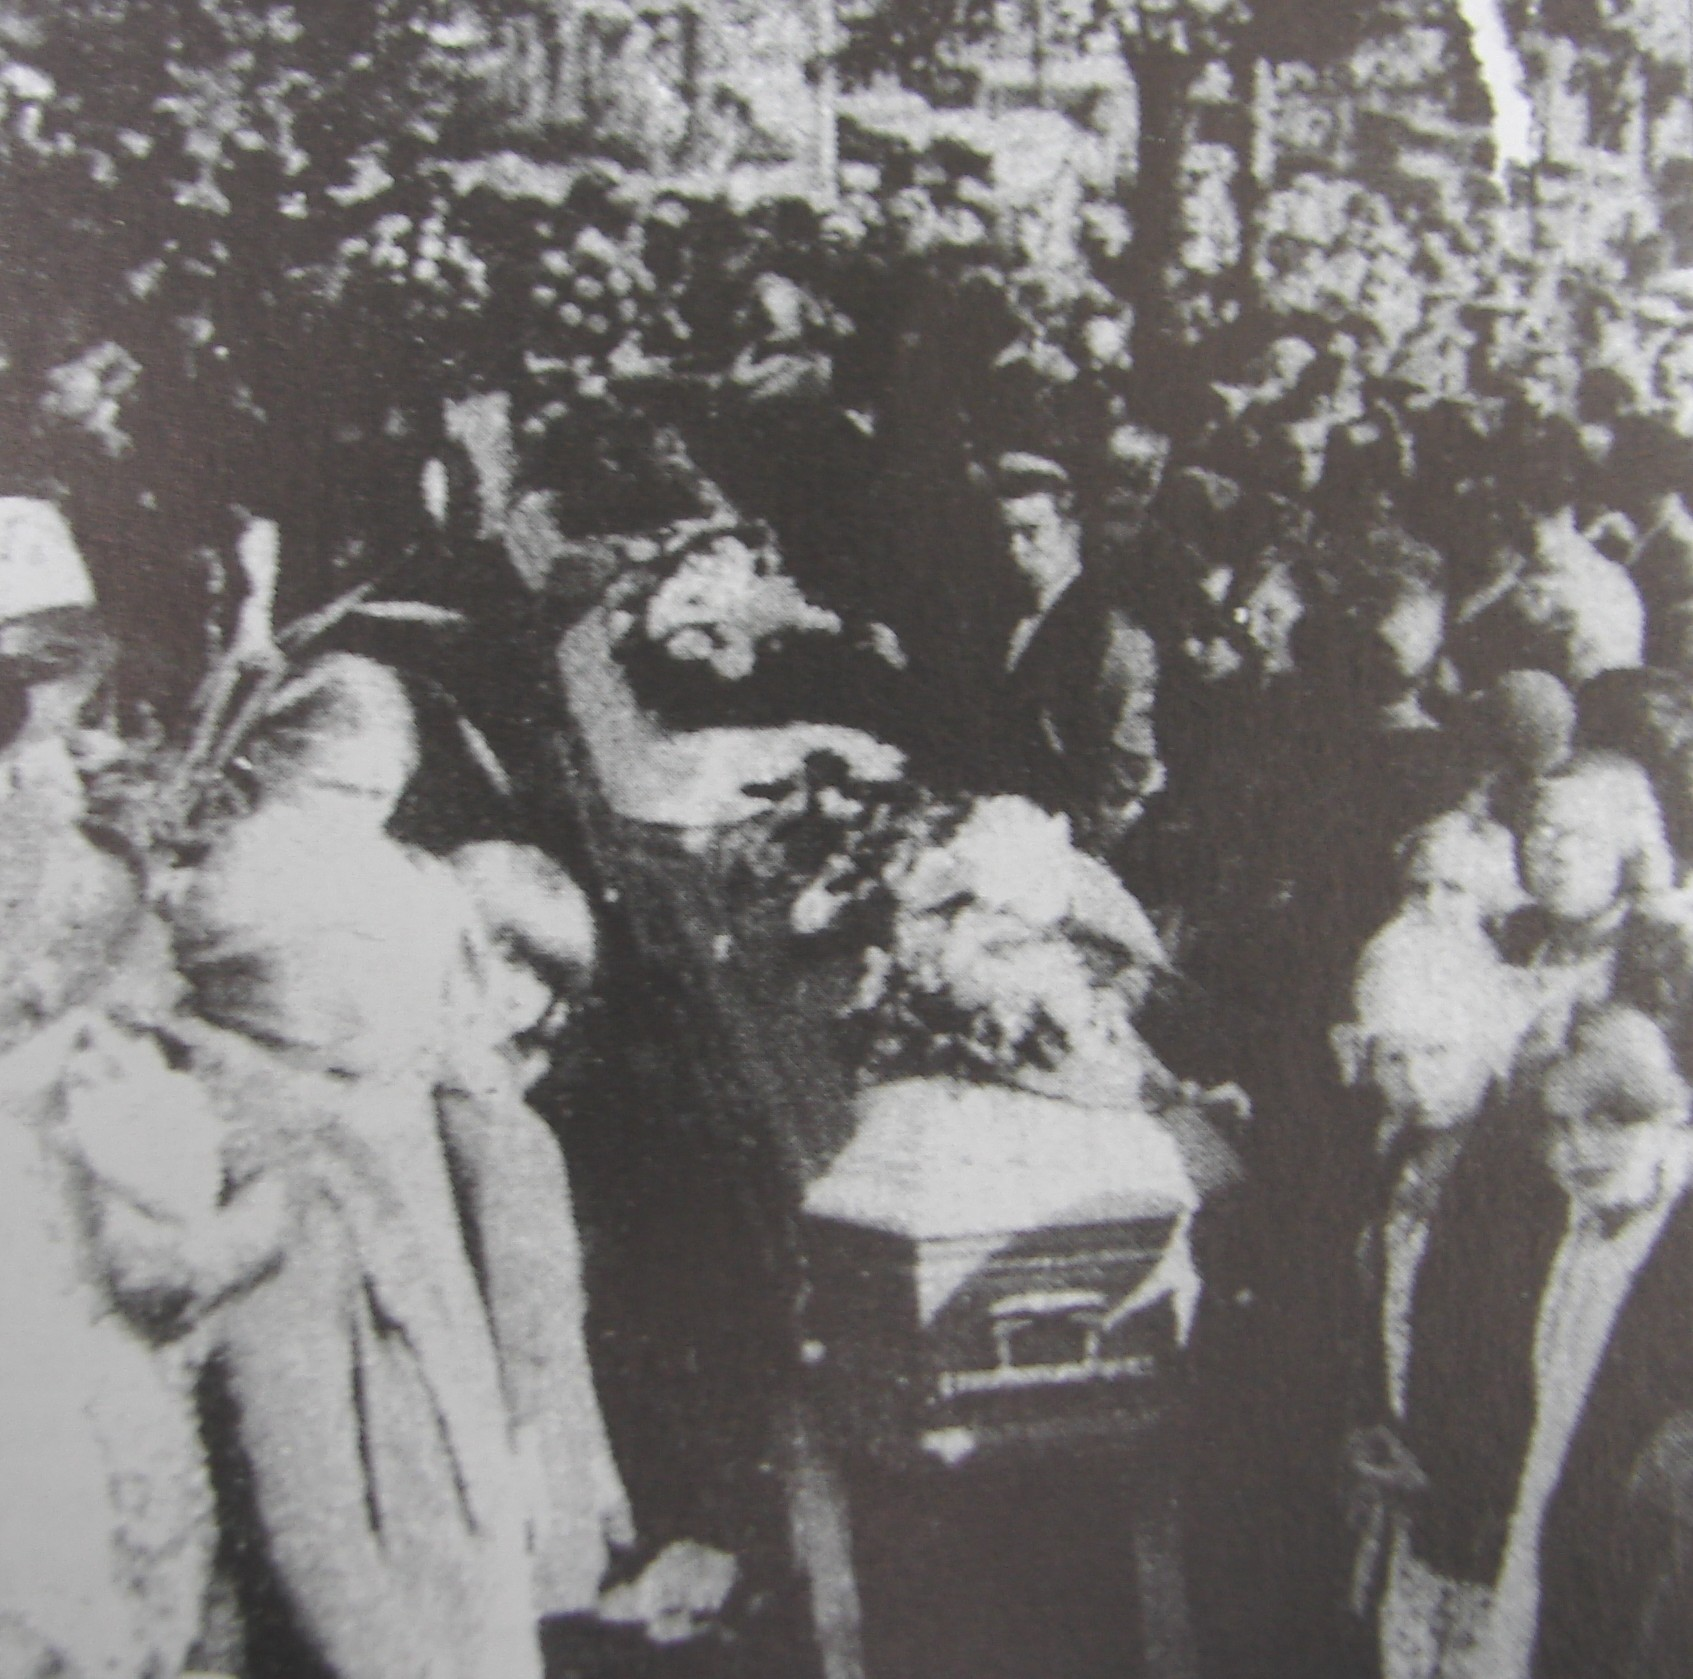 The strike was so divisive that no church would hold services for the slain workers.  Instead, their coffins were placed on saw horses in a field near the mill.